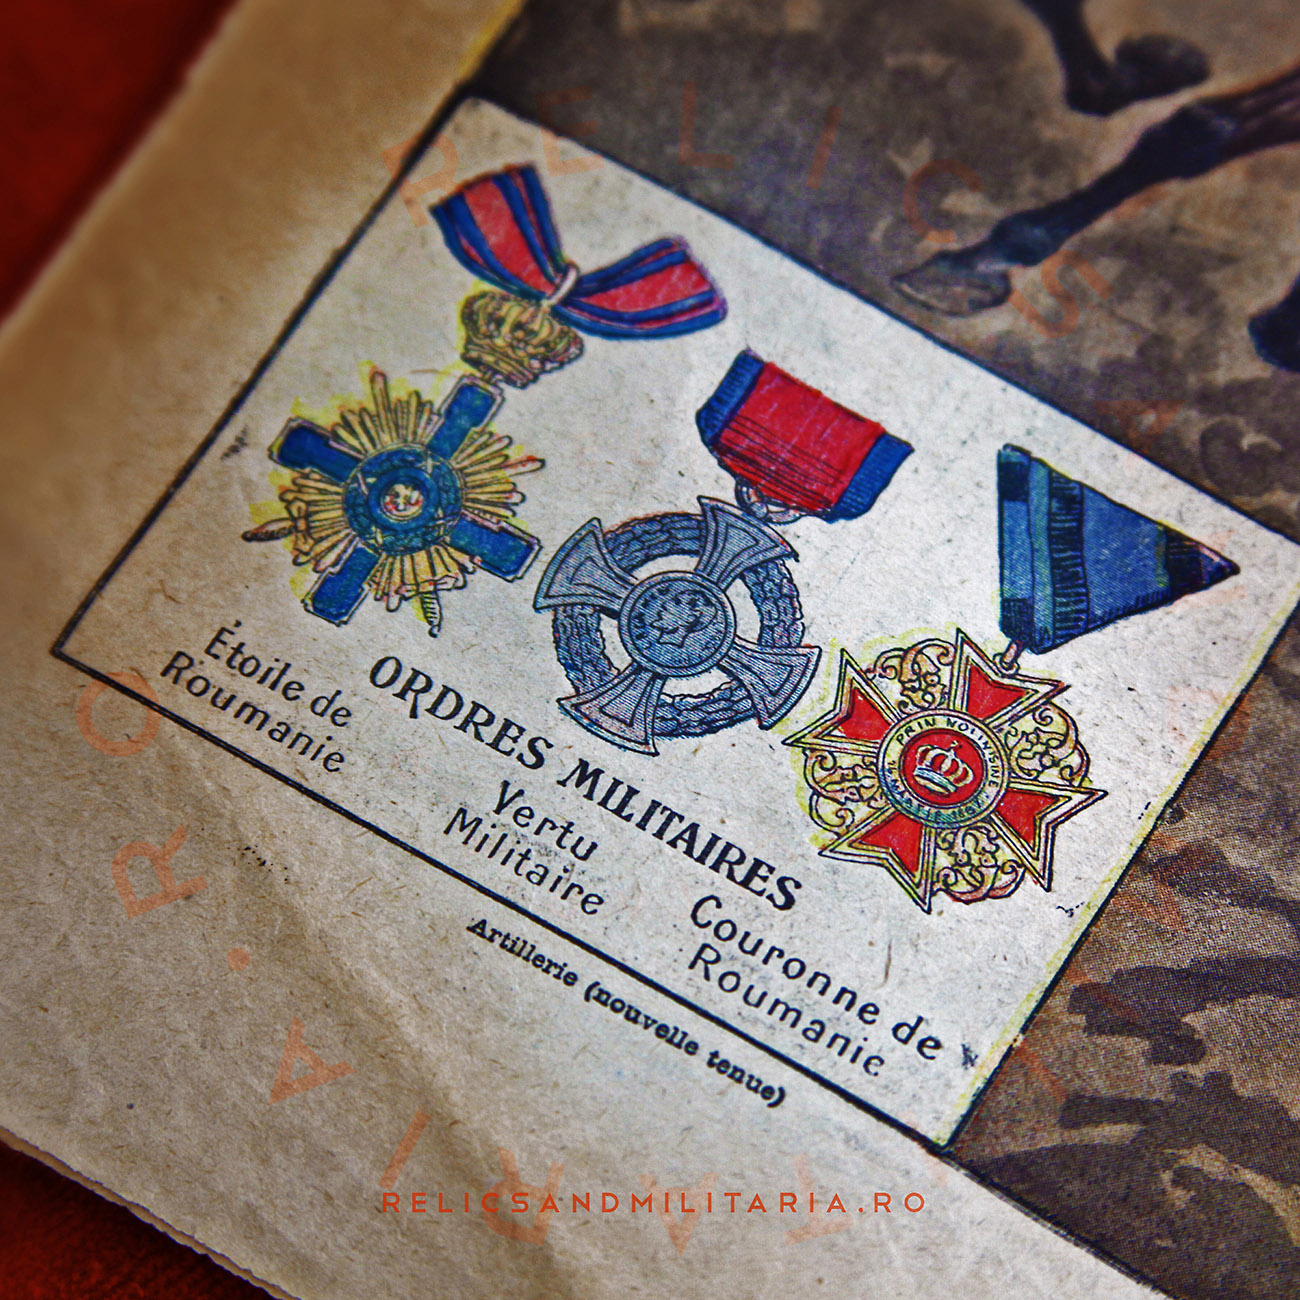 Romanian ww1 medals and decorations